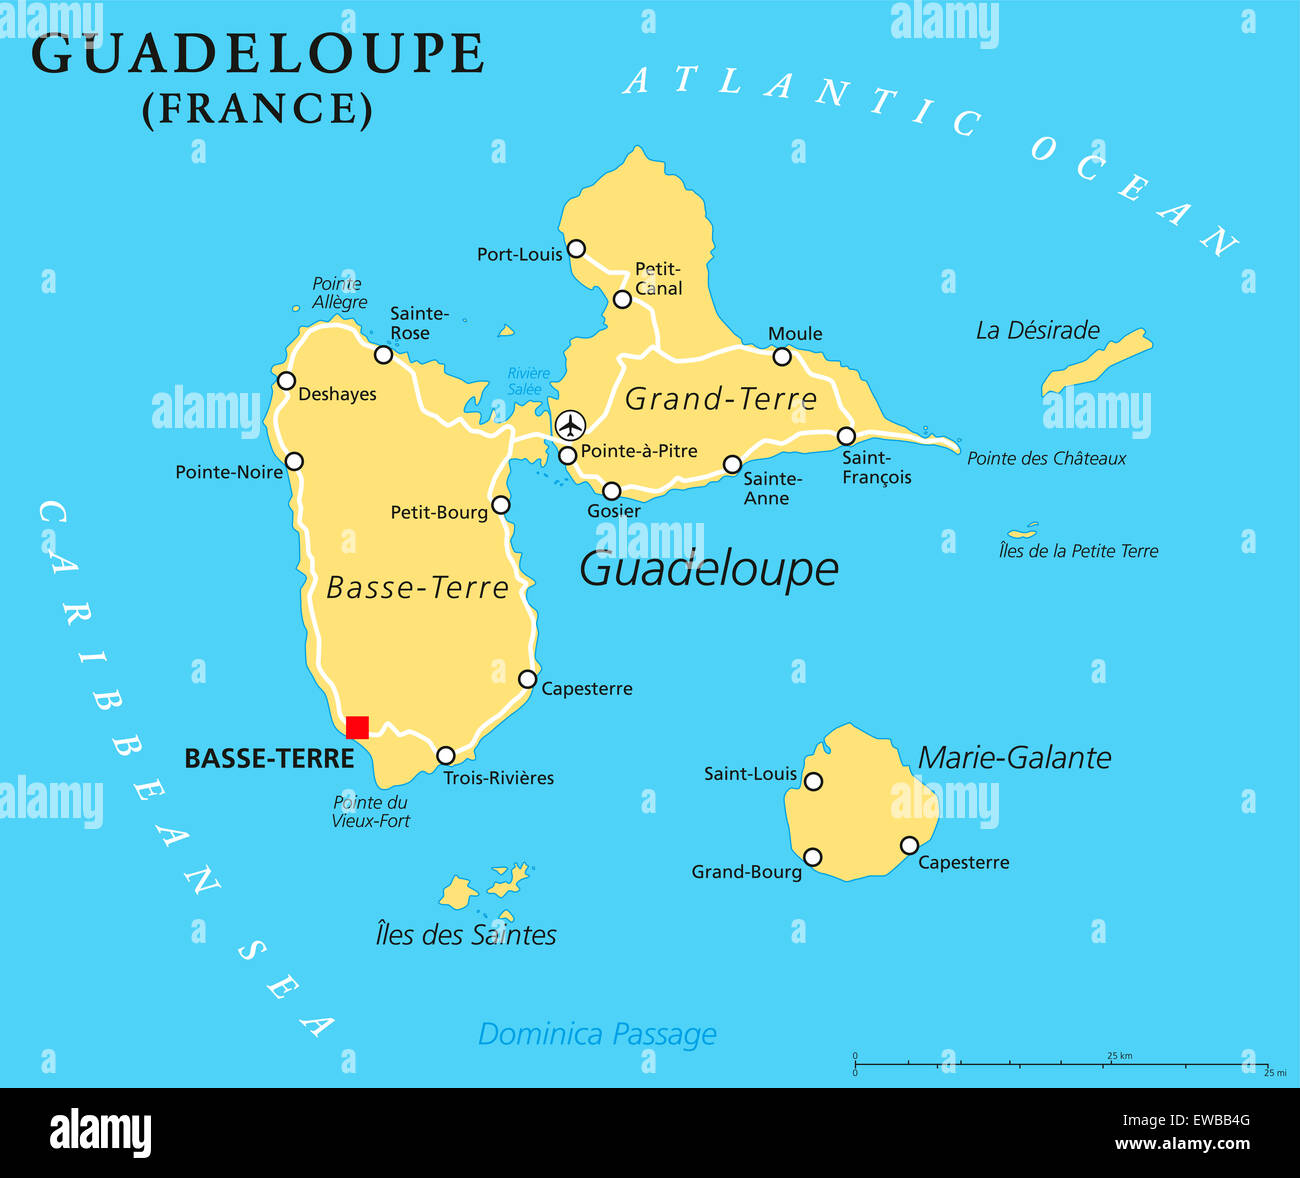 Guadeloupe Karte.Guadeloupe Map Stock Photos Guadeloupe Map Stock Images Alamy